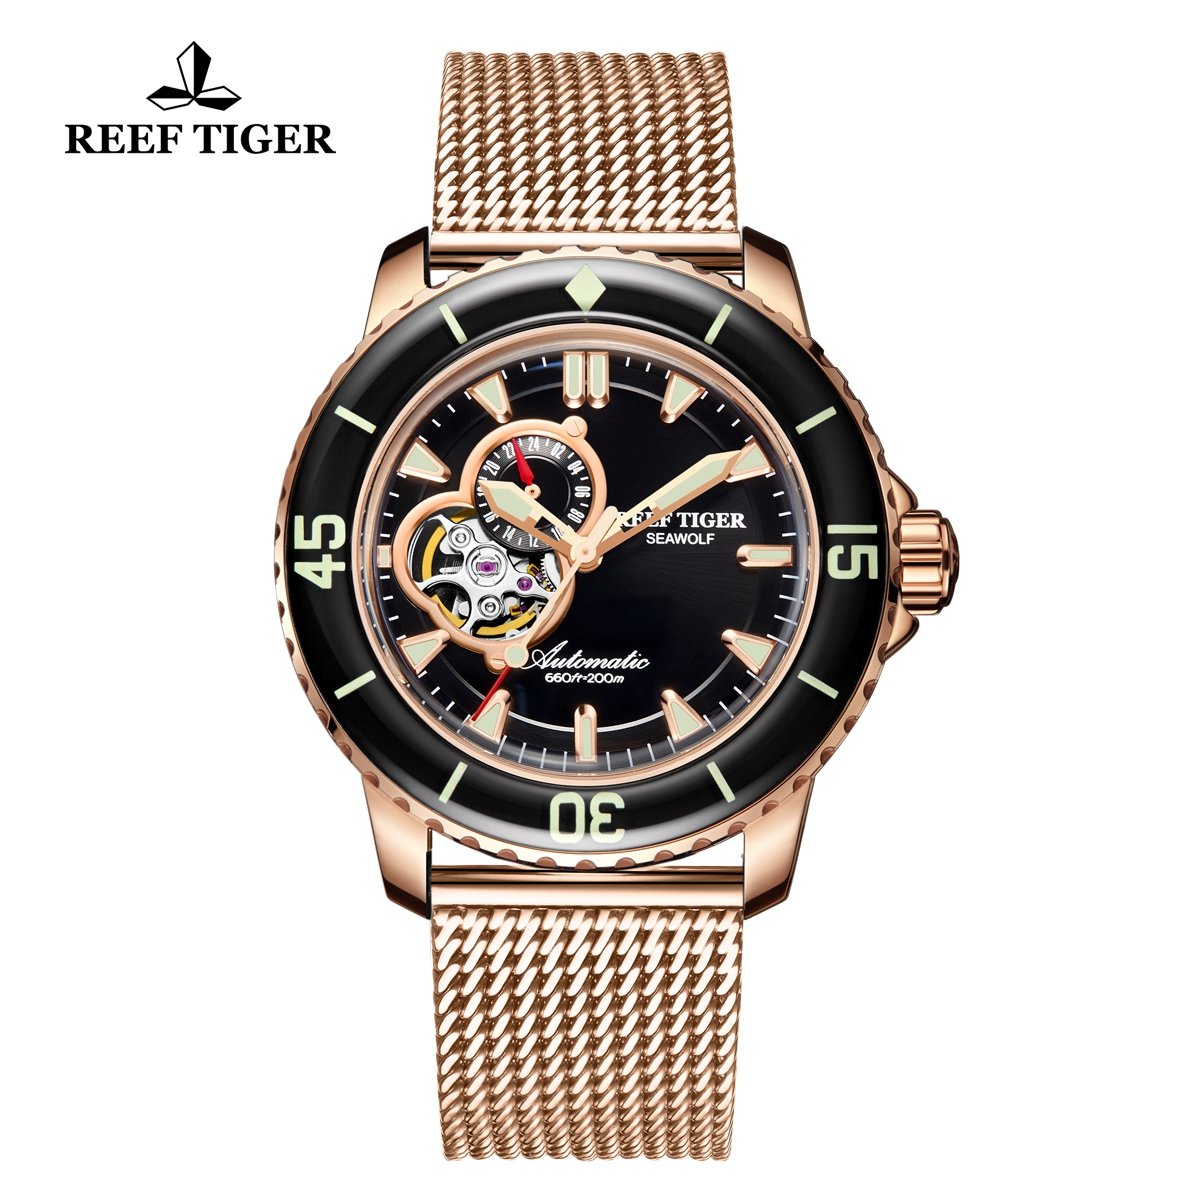 Reef Tiger Sea Wolf Dress Automatic Watch Rose Gold Black Dial RGA3039-PBP